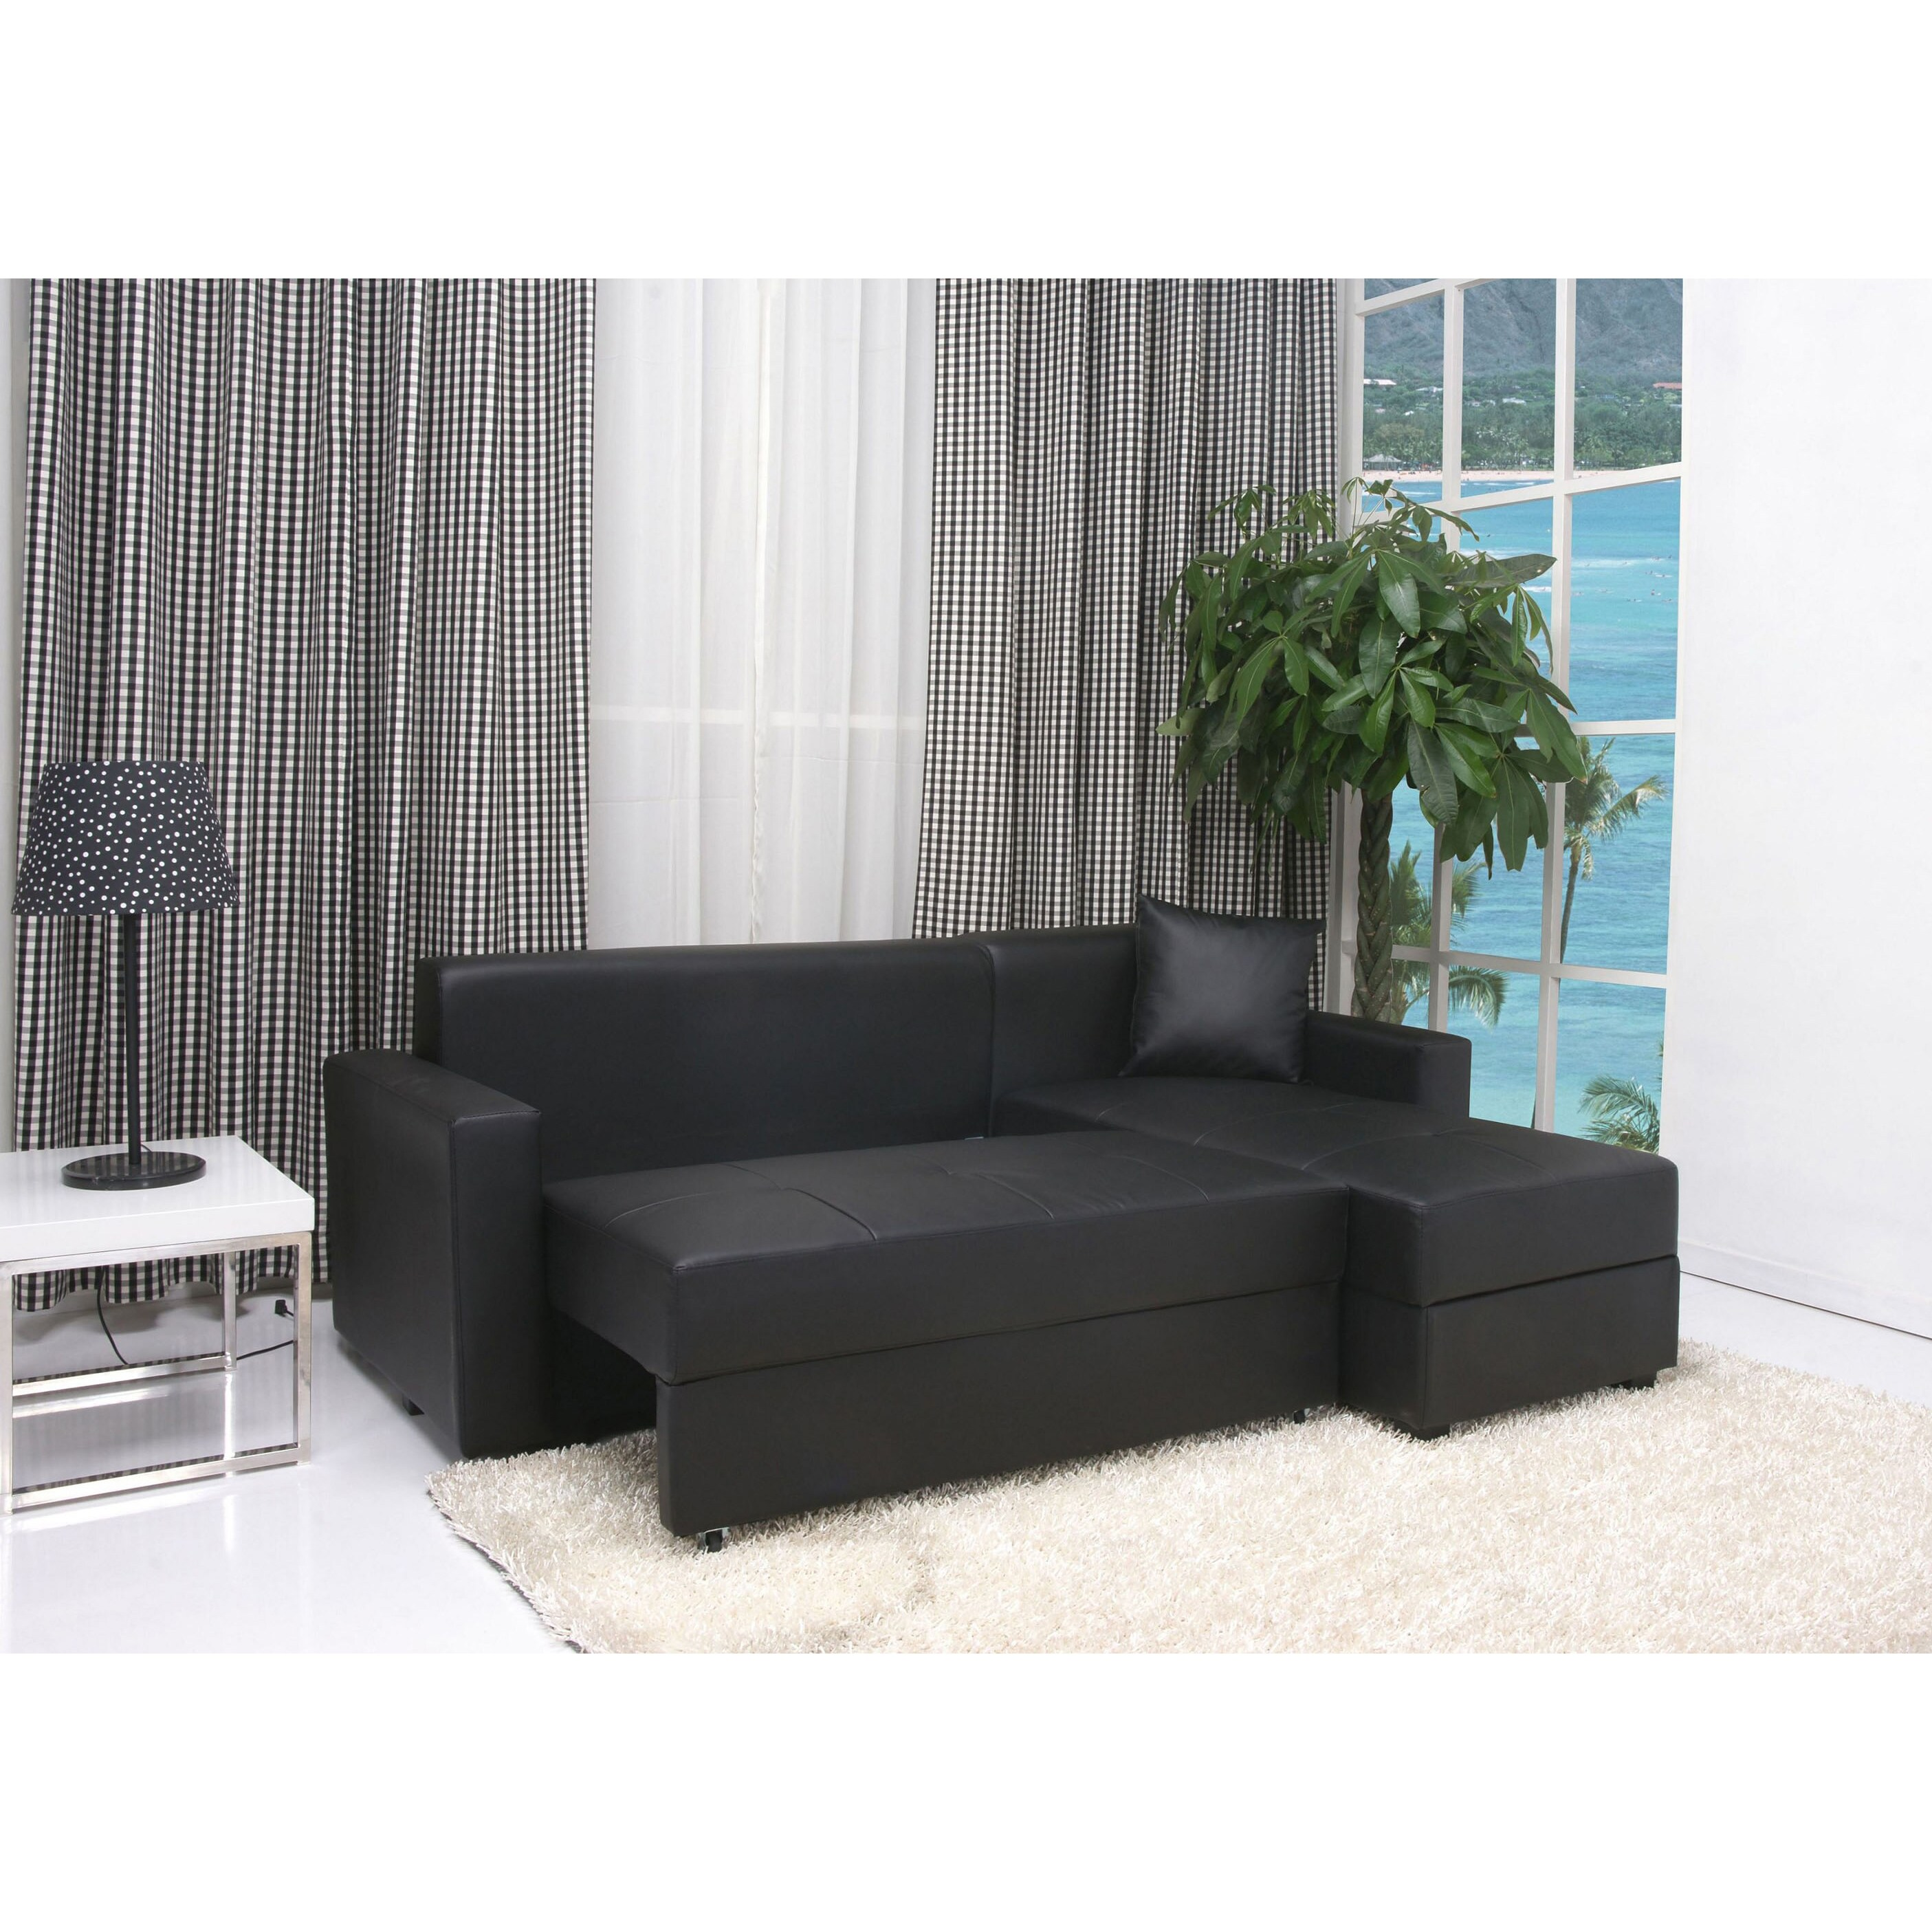 San Jose Black Convertible Sectional Storage Sofa Bed Free Shipping Today 5560862